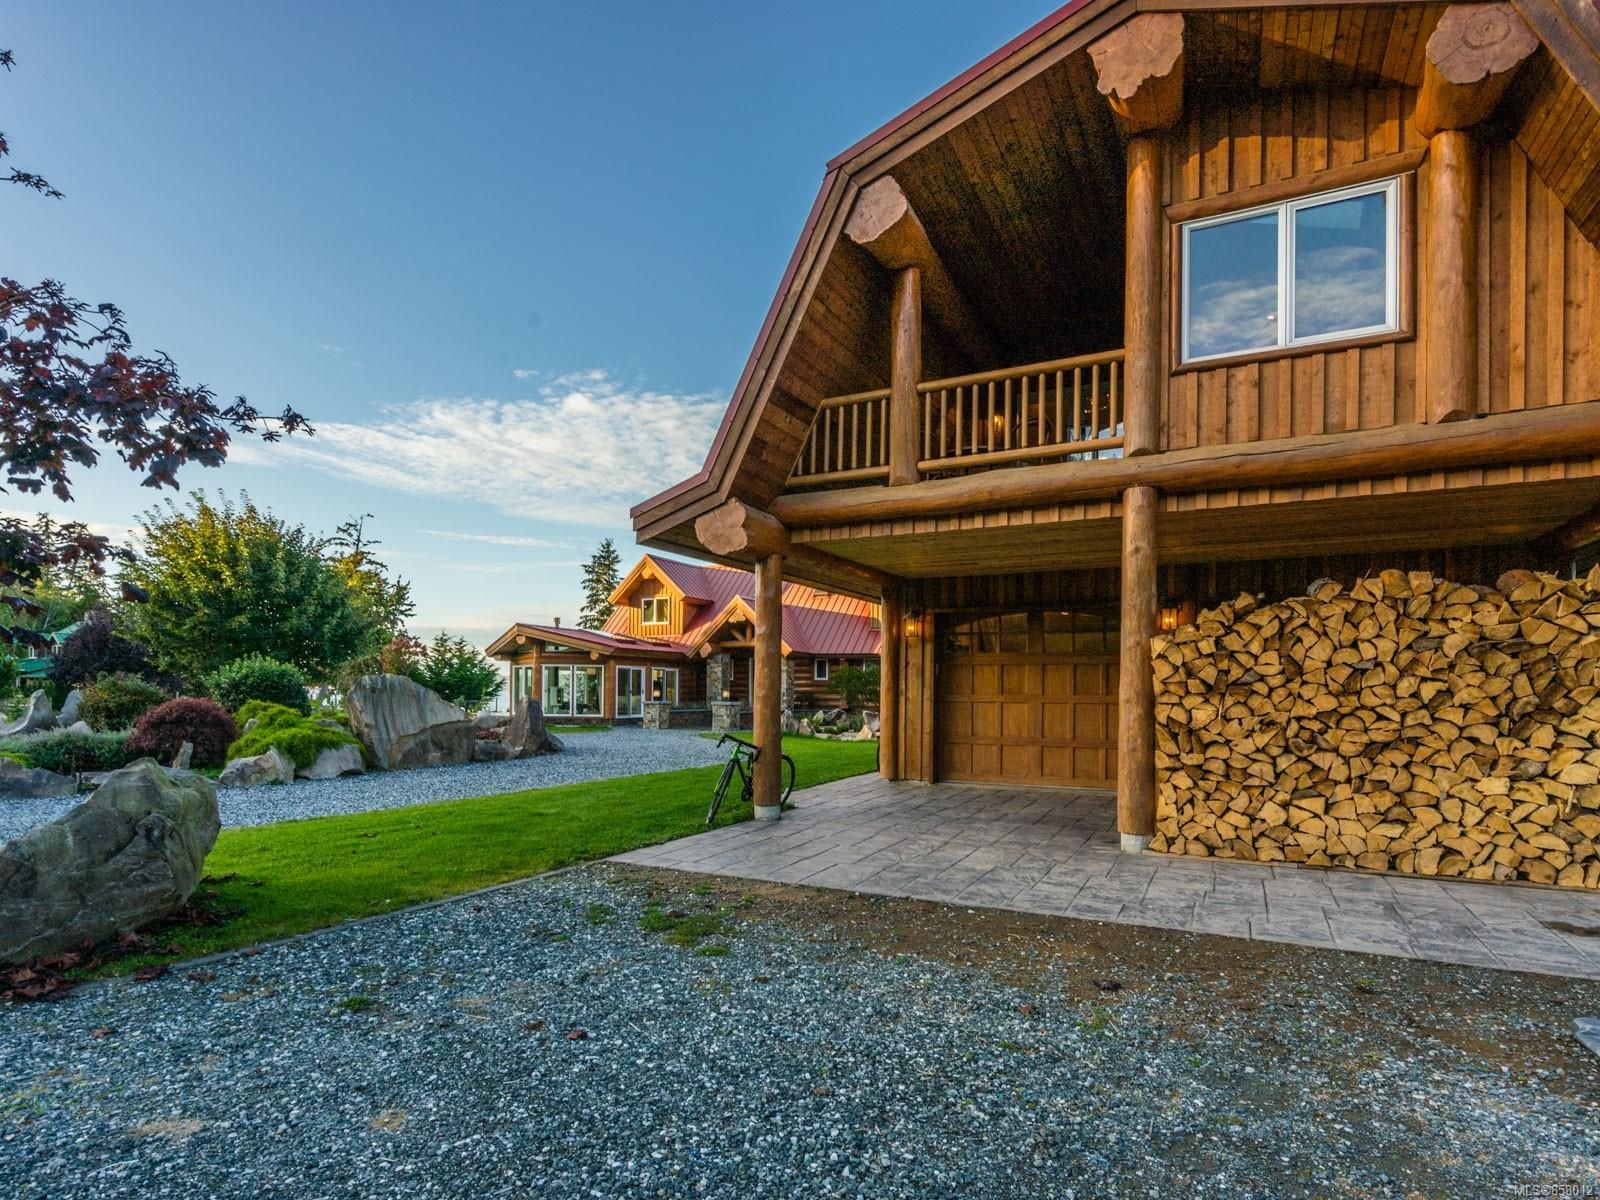 Photo 48: Photos: 6030 MINE Rd in : NI Port McNeill House for sale (North Island)  : MLS®# 858012